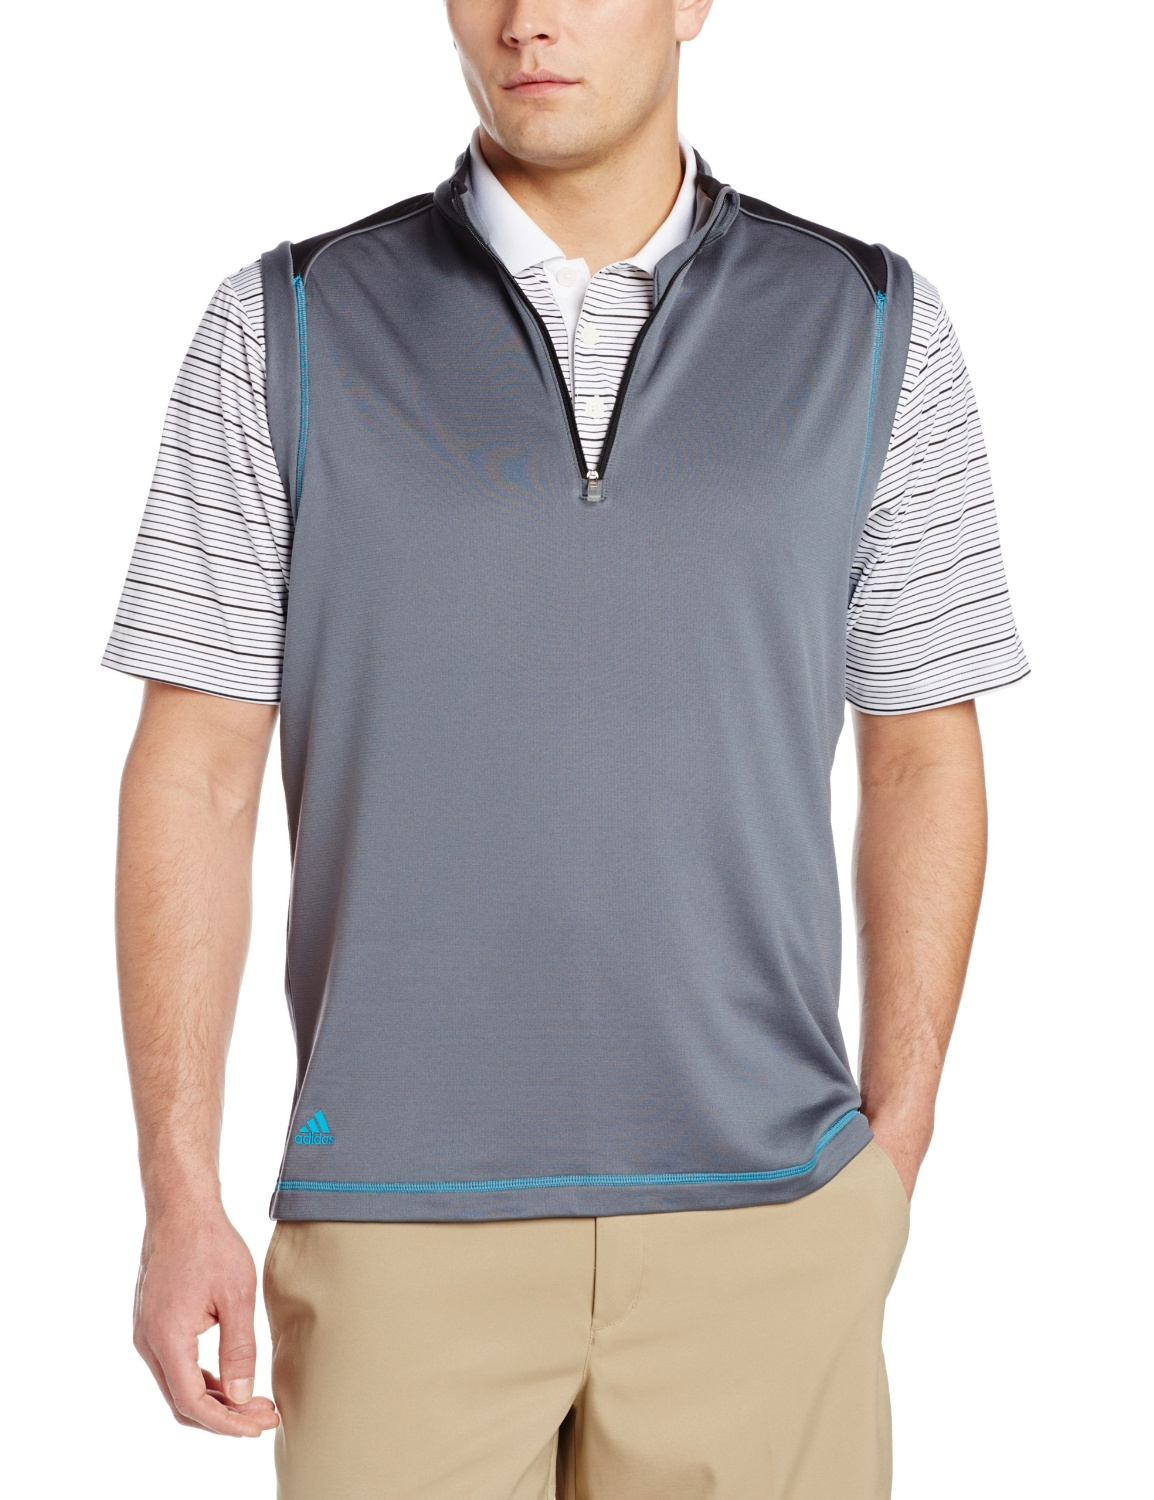 Adidas Mens Golf Vests